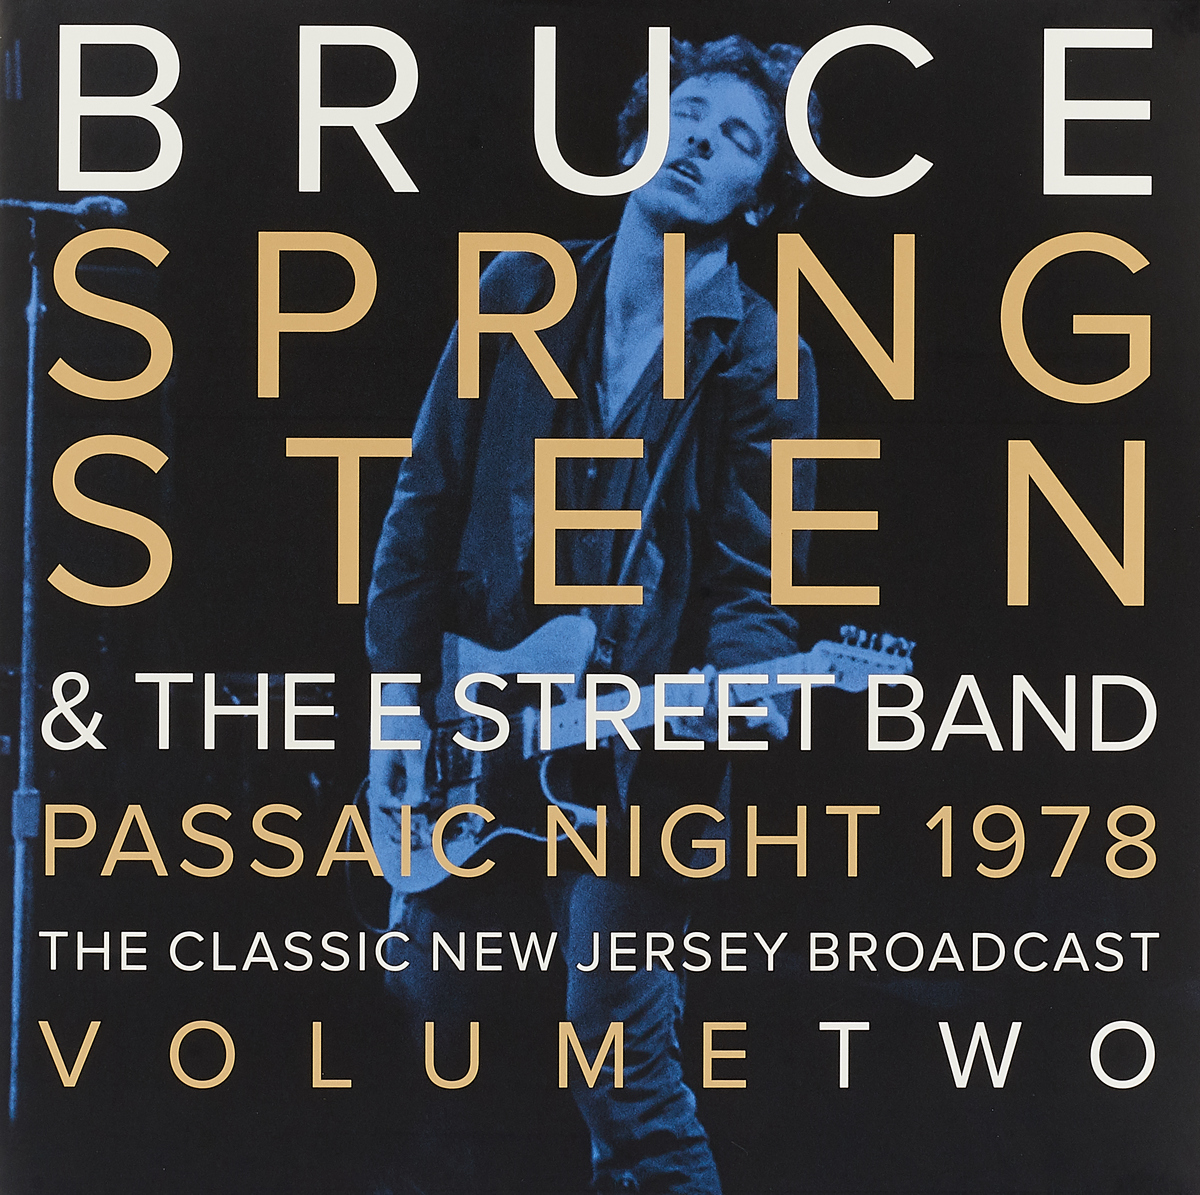 Брюс Спрингстин Bruce Springsteen. Passaic Night 1978 The Classic New Jersey Broadcast Volume Two (2 LP) цена